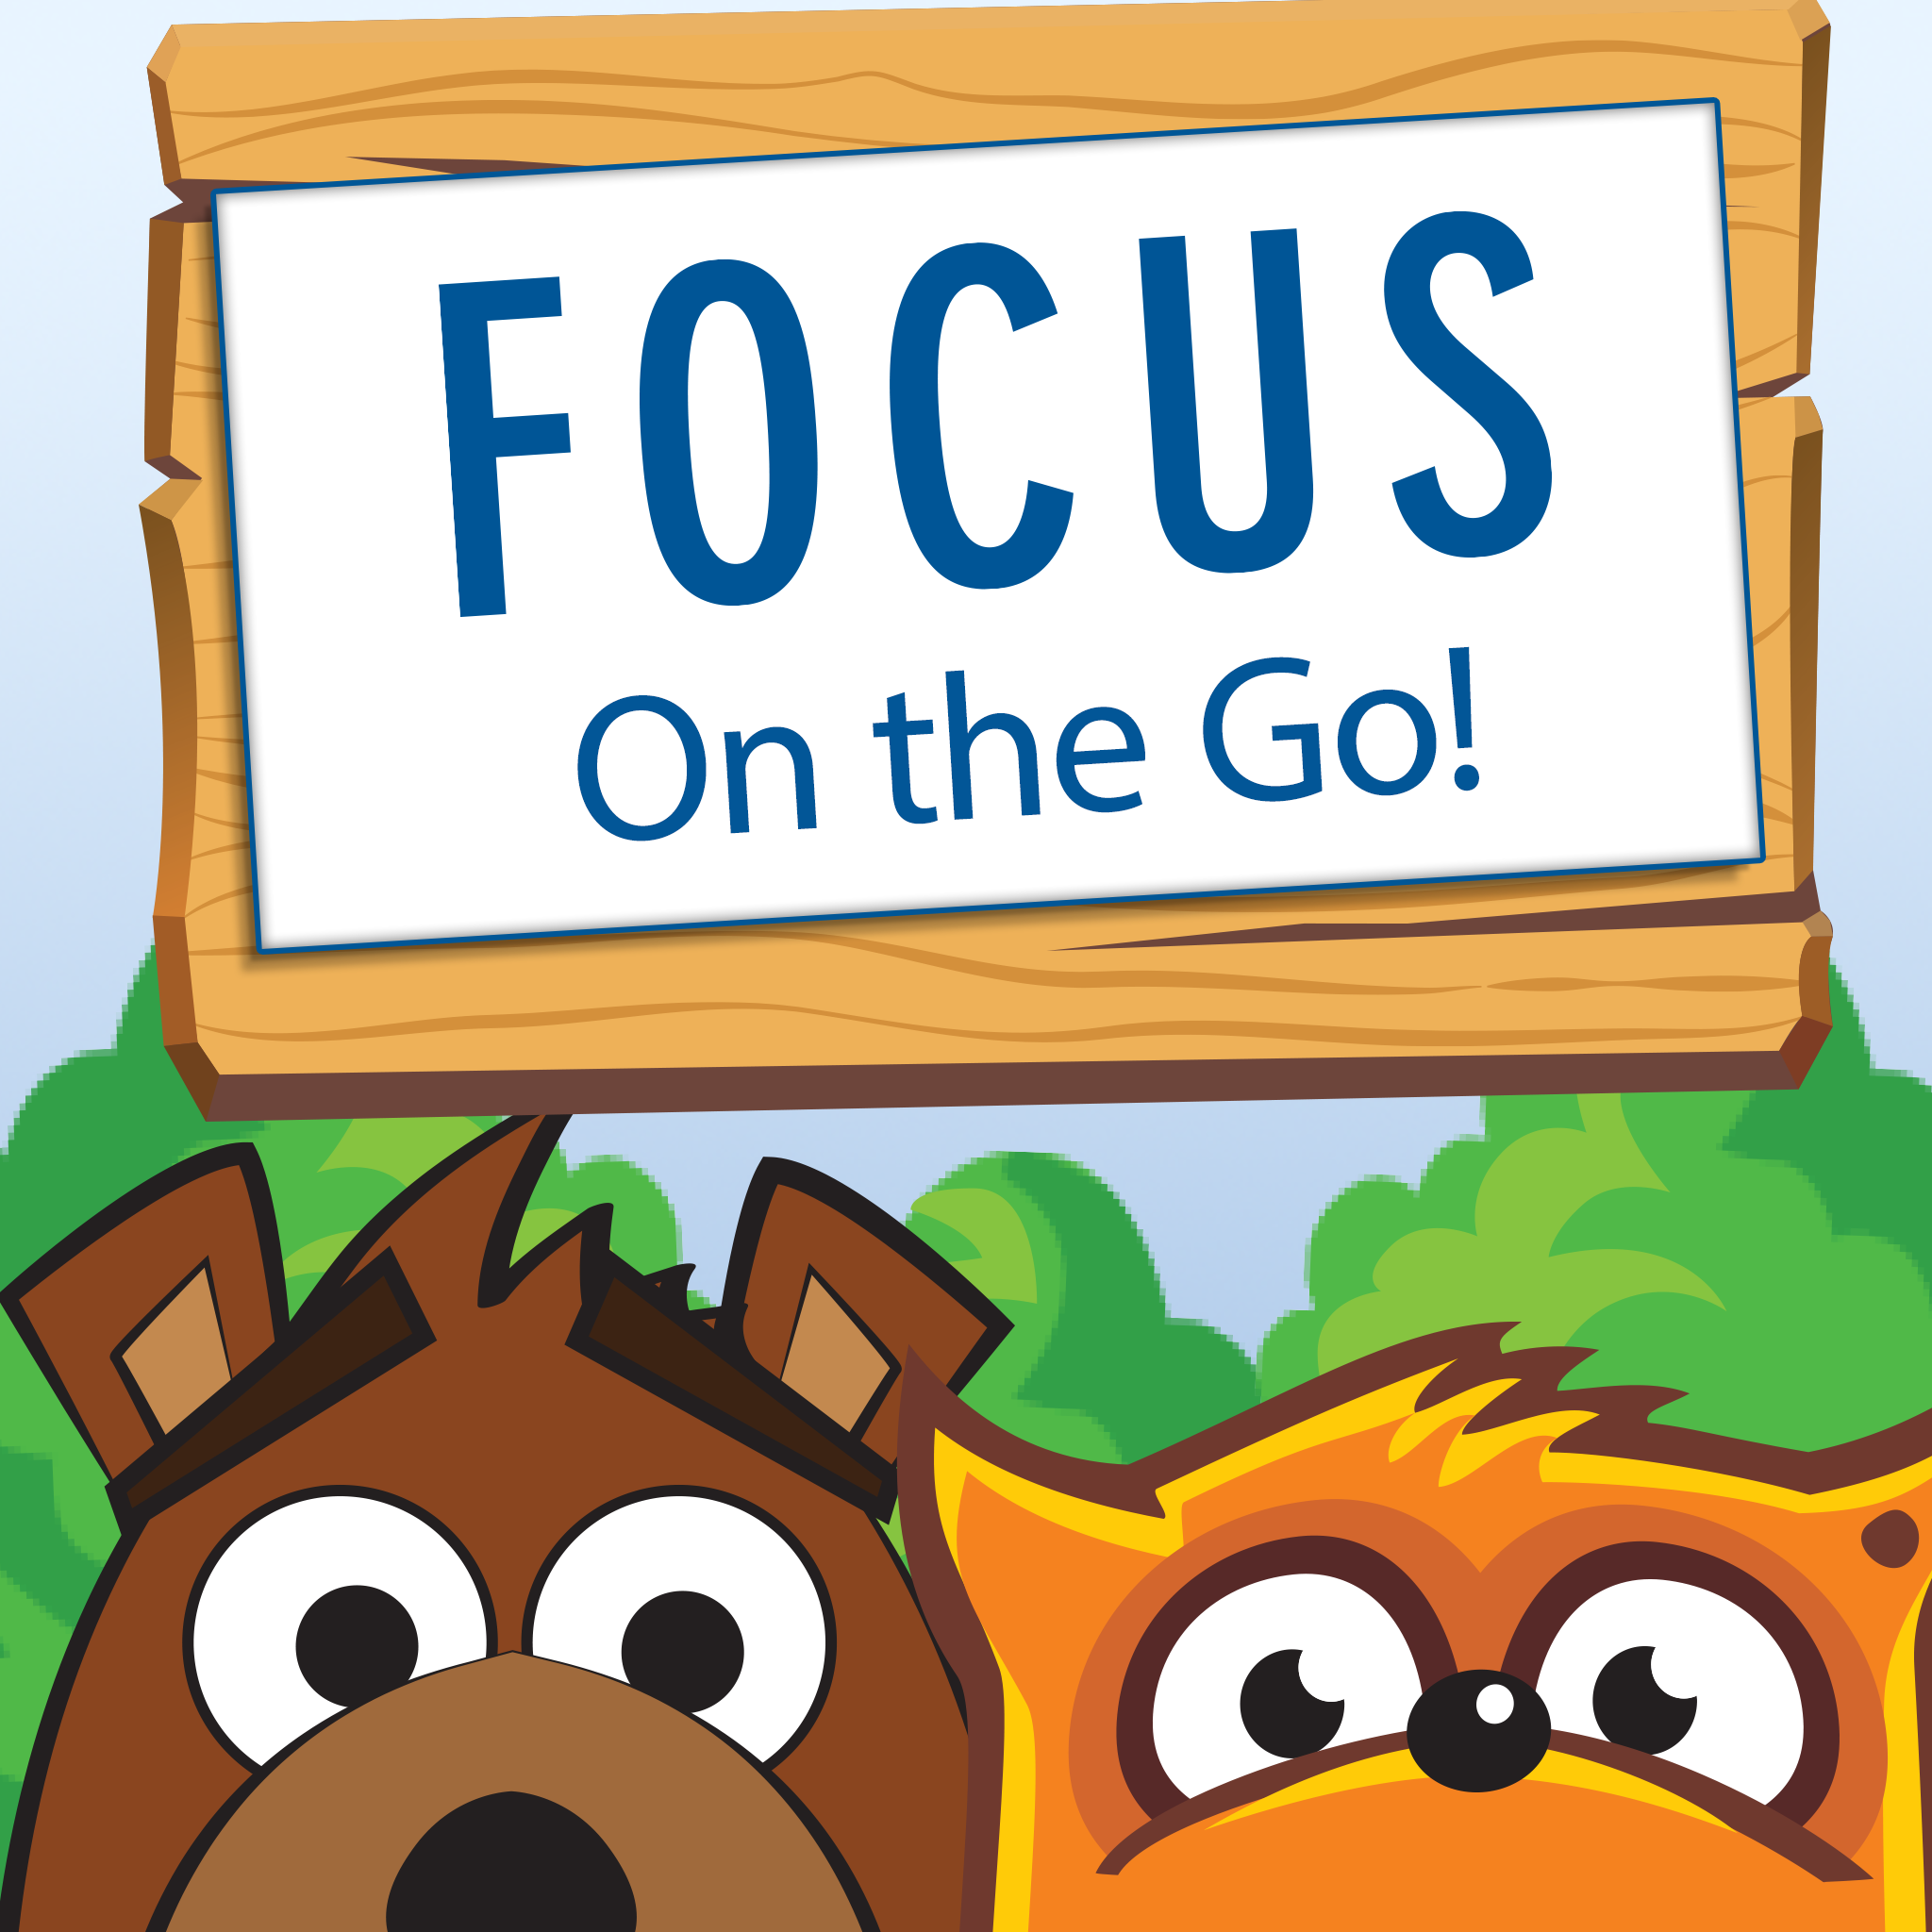 FOCUS on the go icon with Buddy Bear and Feeling Fox